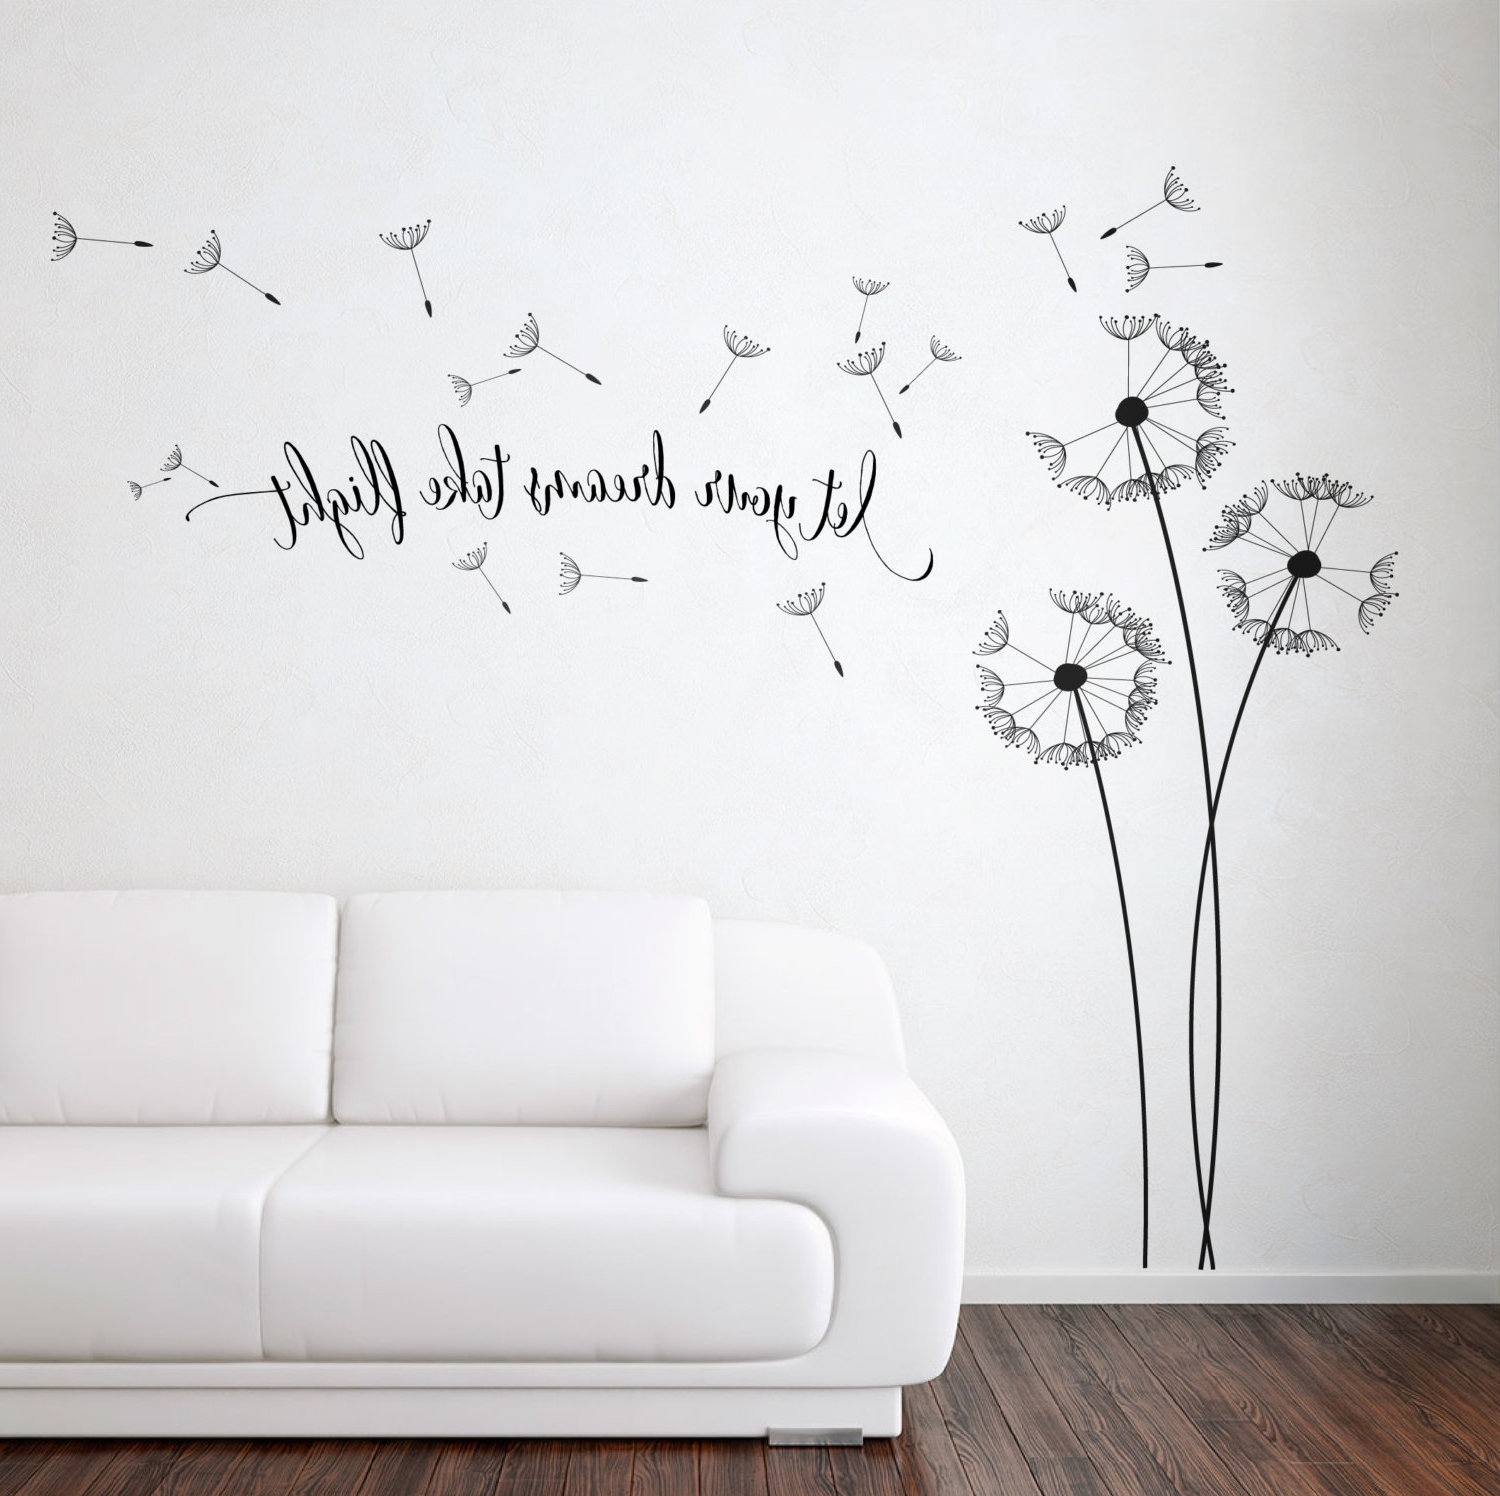 Latest Dandelion Wall Art Pertaining To Dandelion Blowing With Quote Wall Sticker, Floral Sticker, Flower (View 10 of 20)